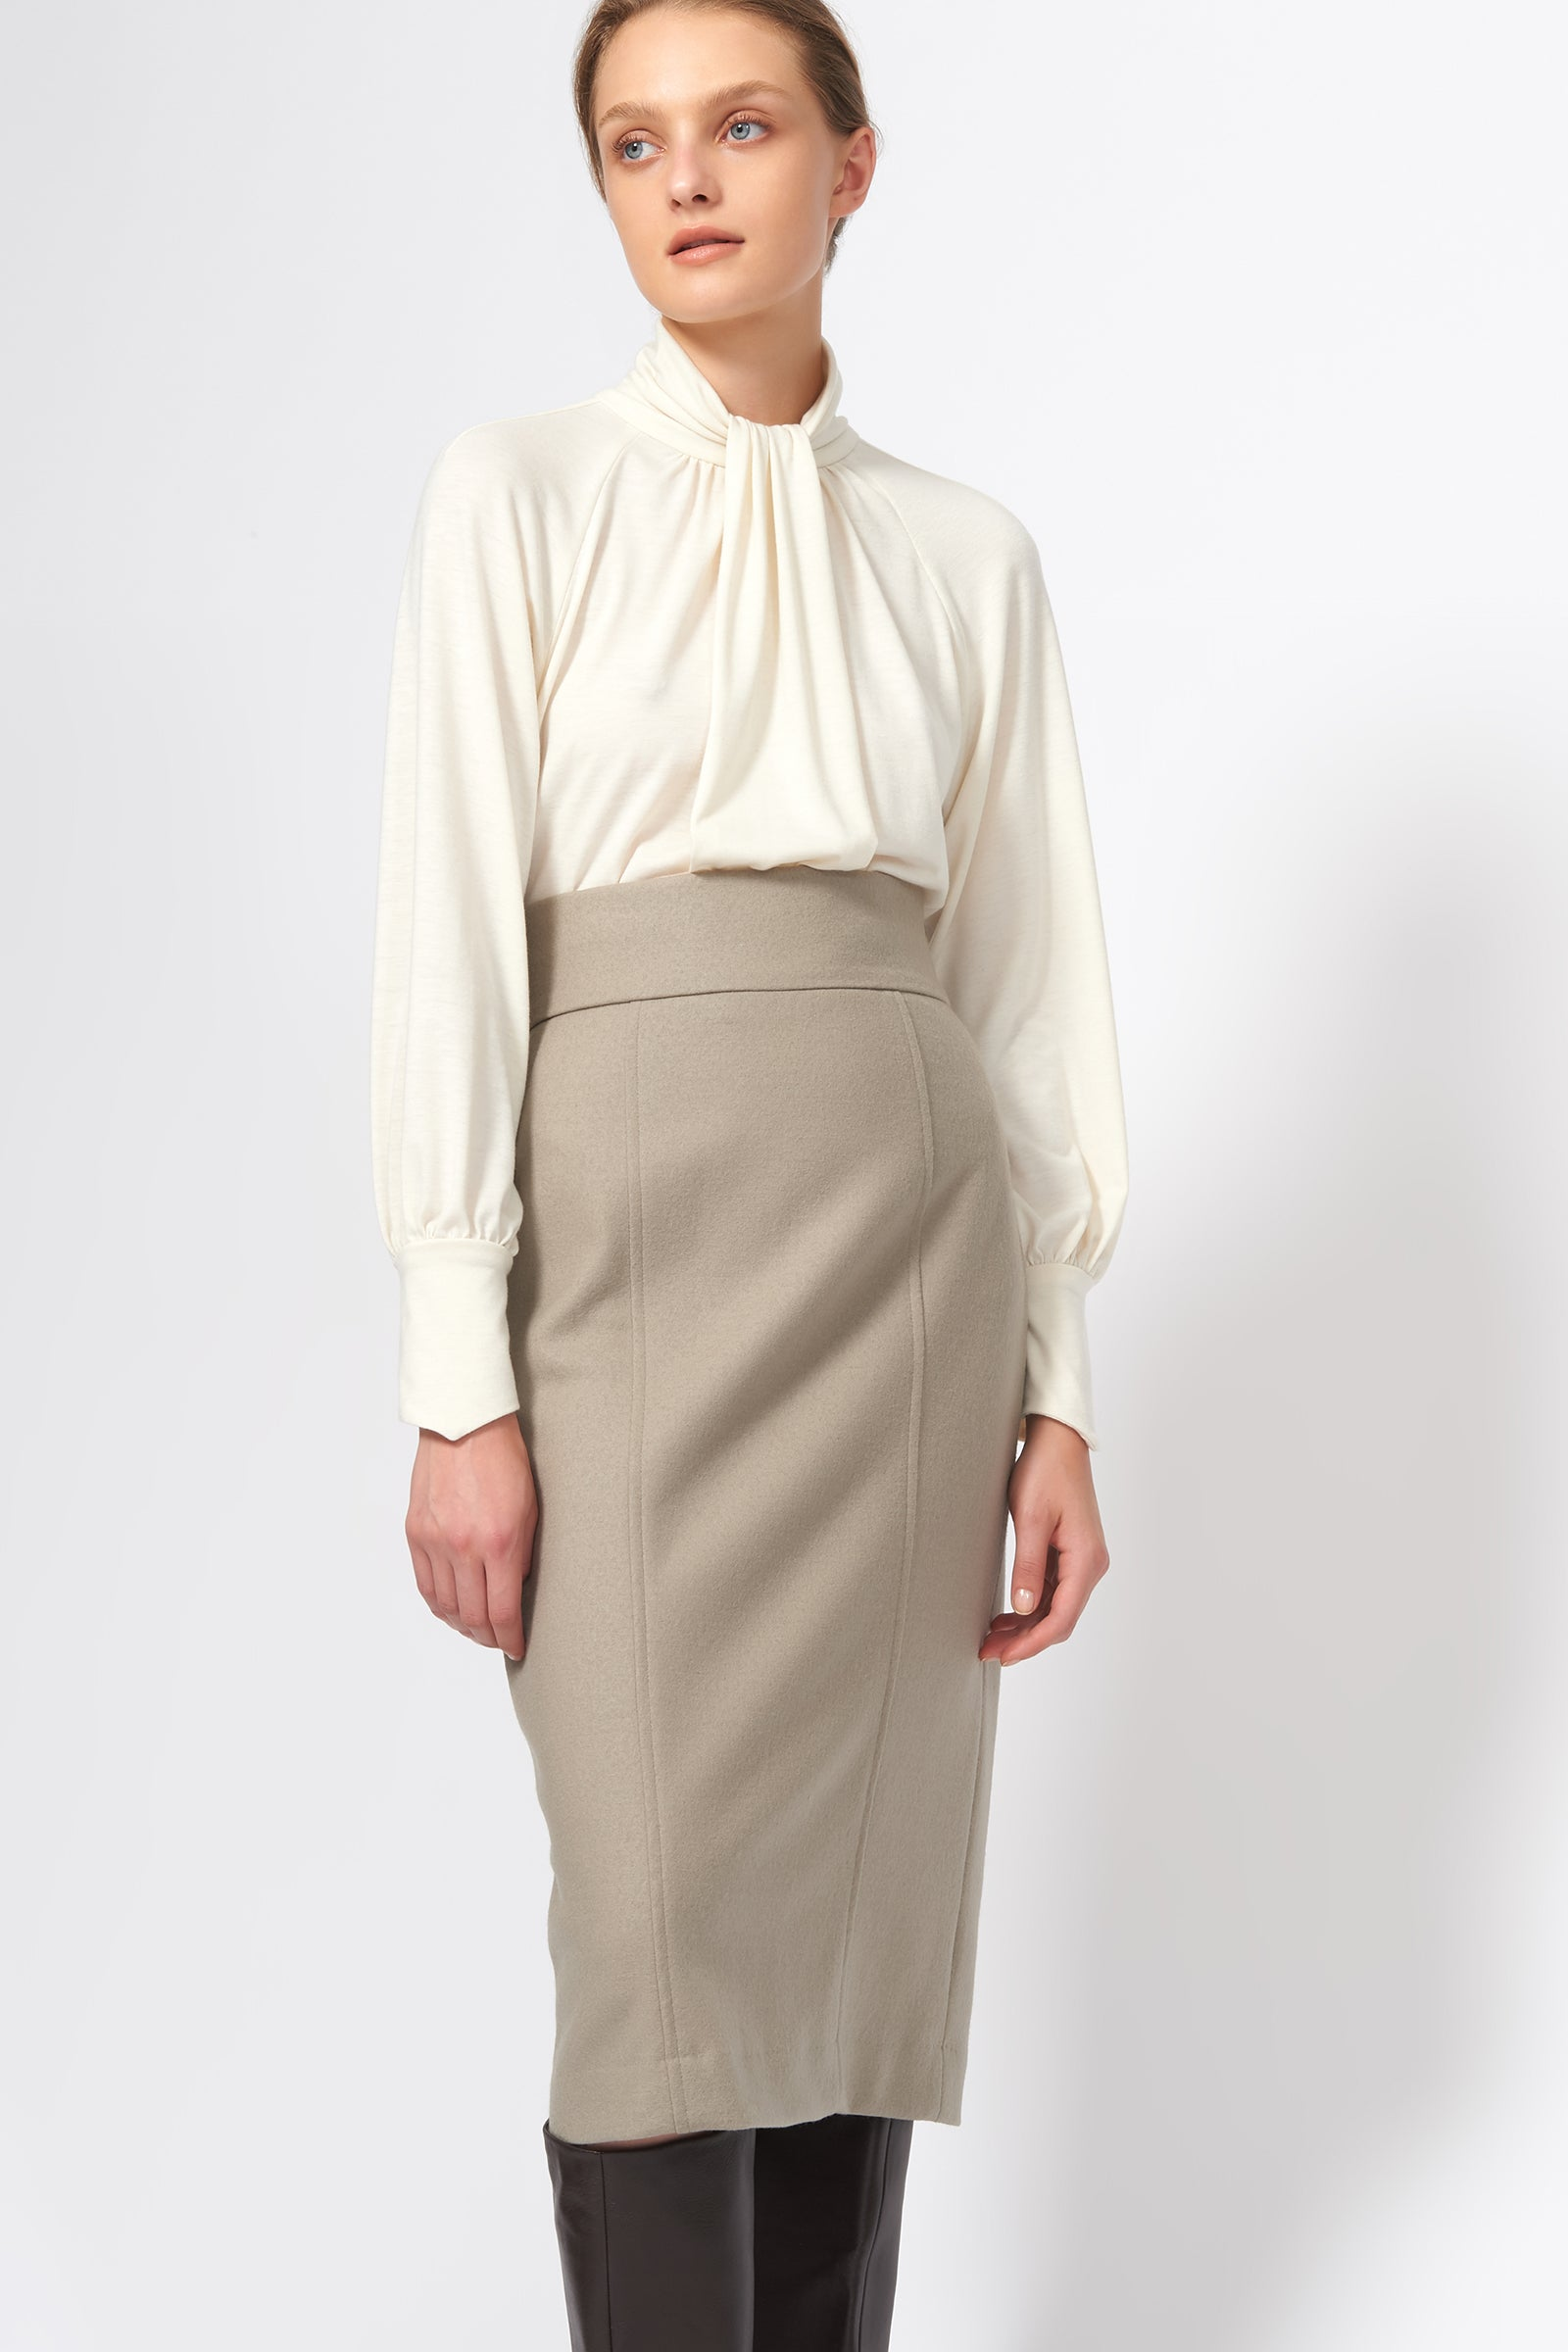 Kal Rieman High Waisted Pencil Skirt in Taupe on Model Front View